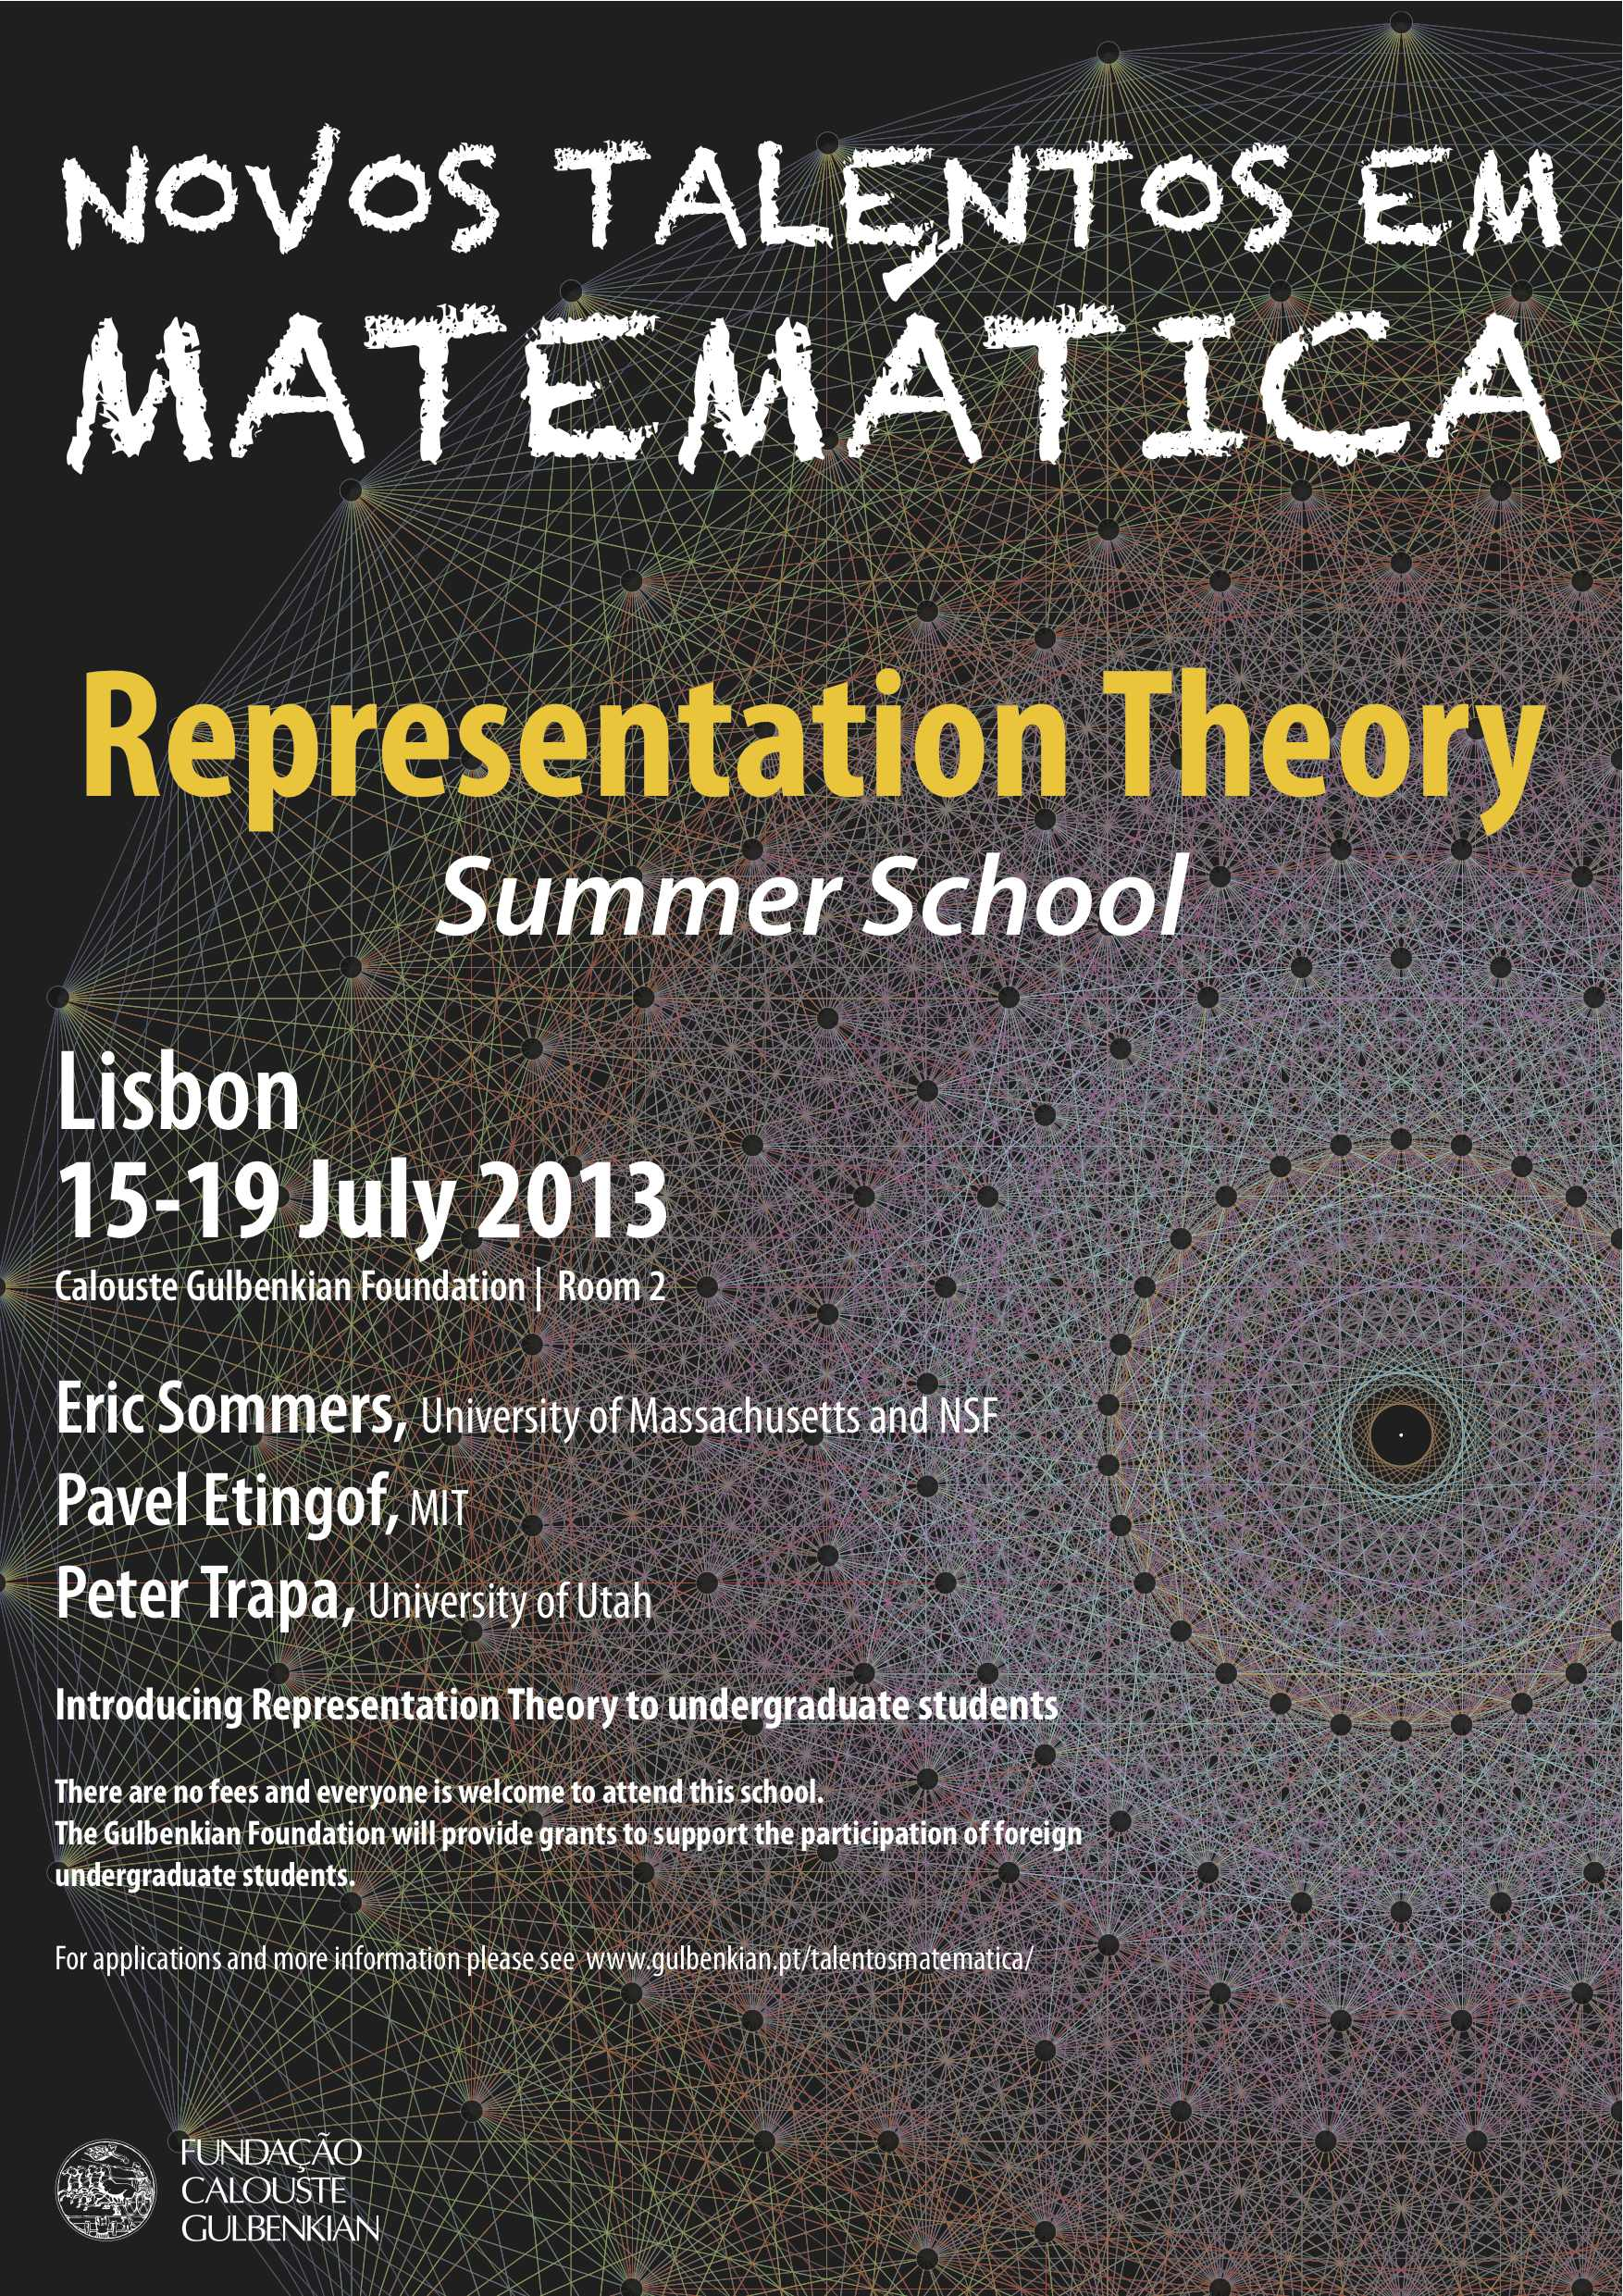 Representation Theory Summer School Lisbon